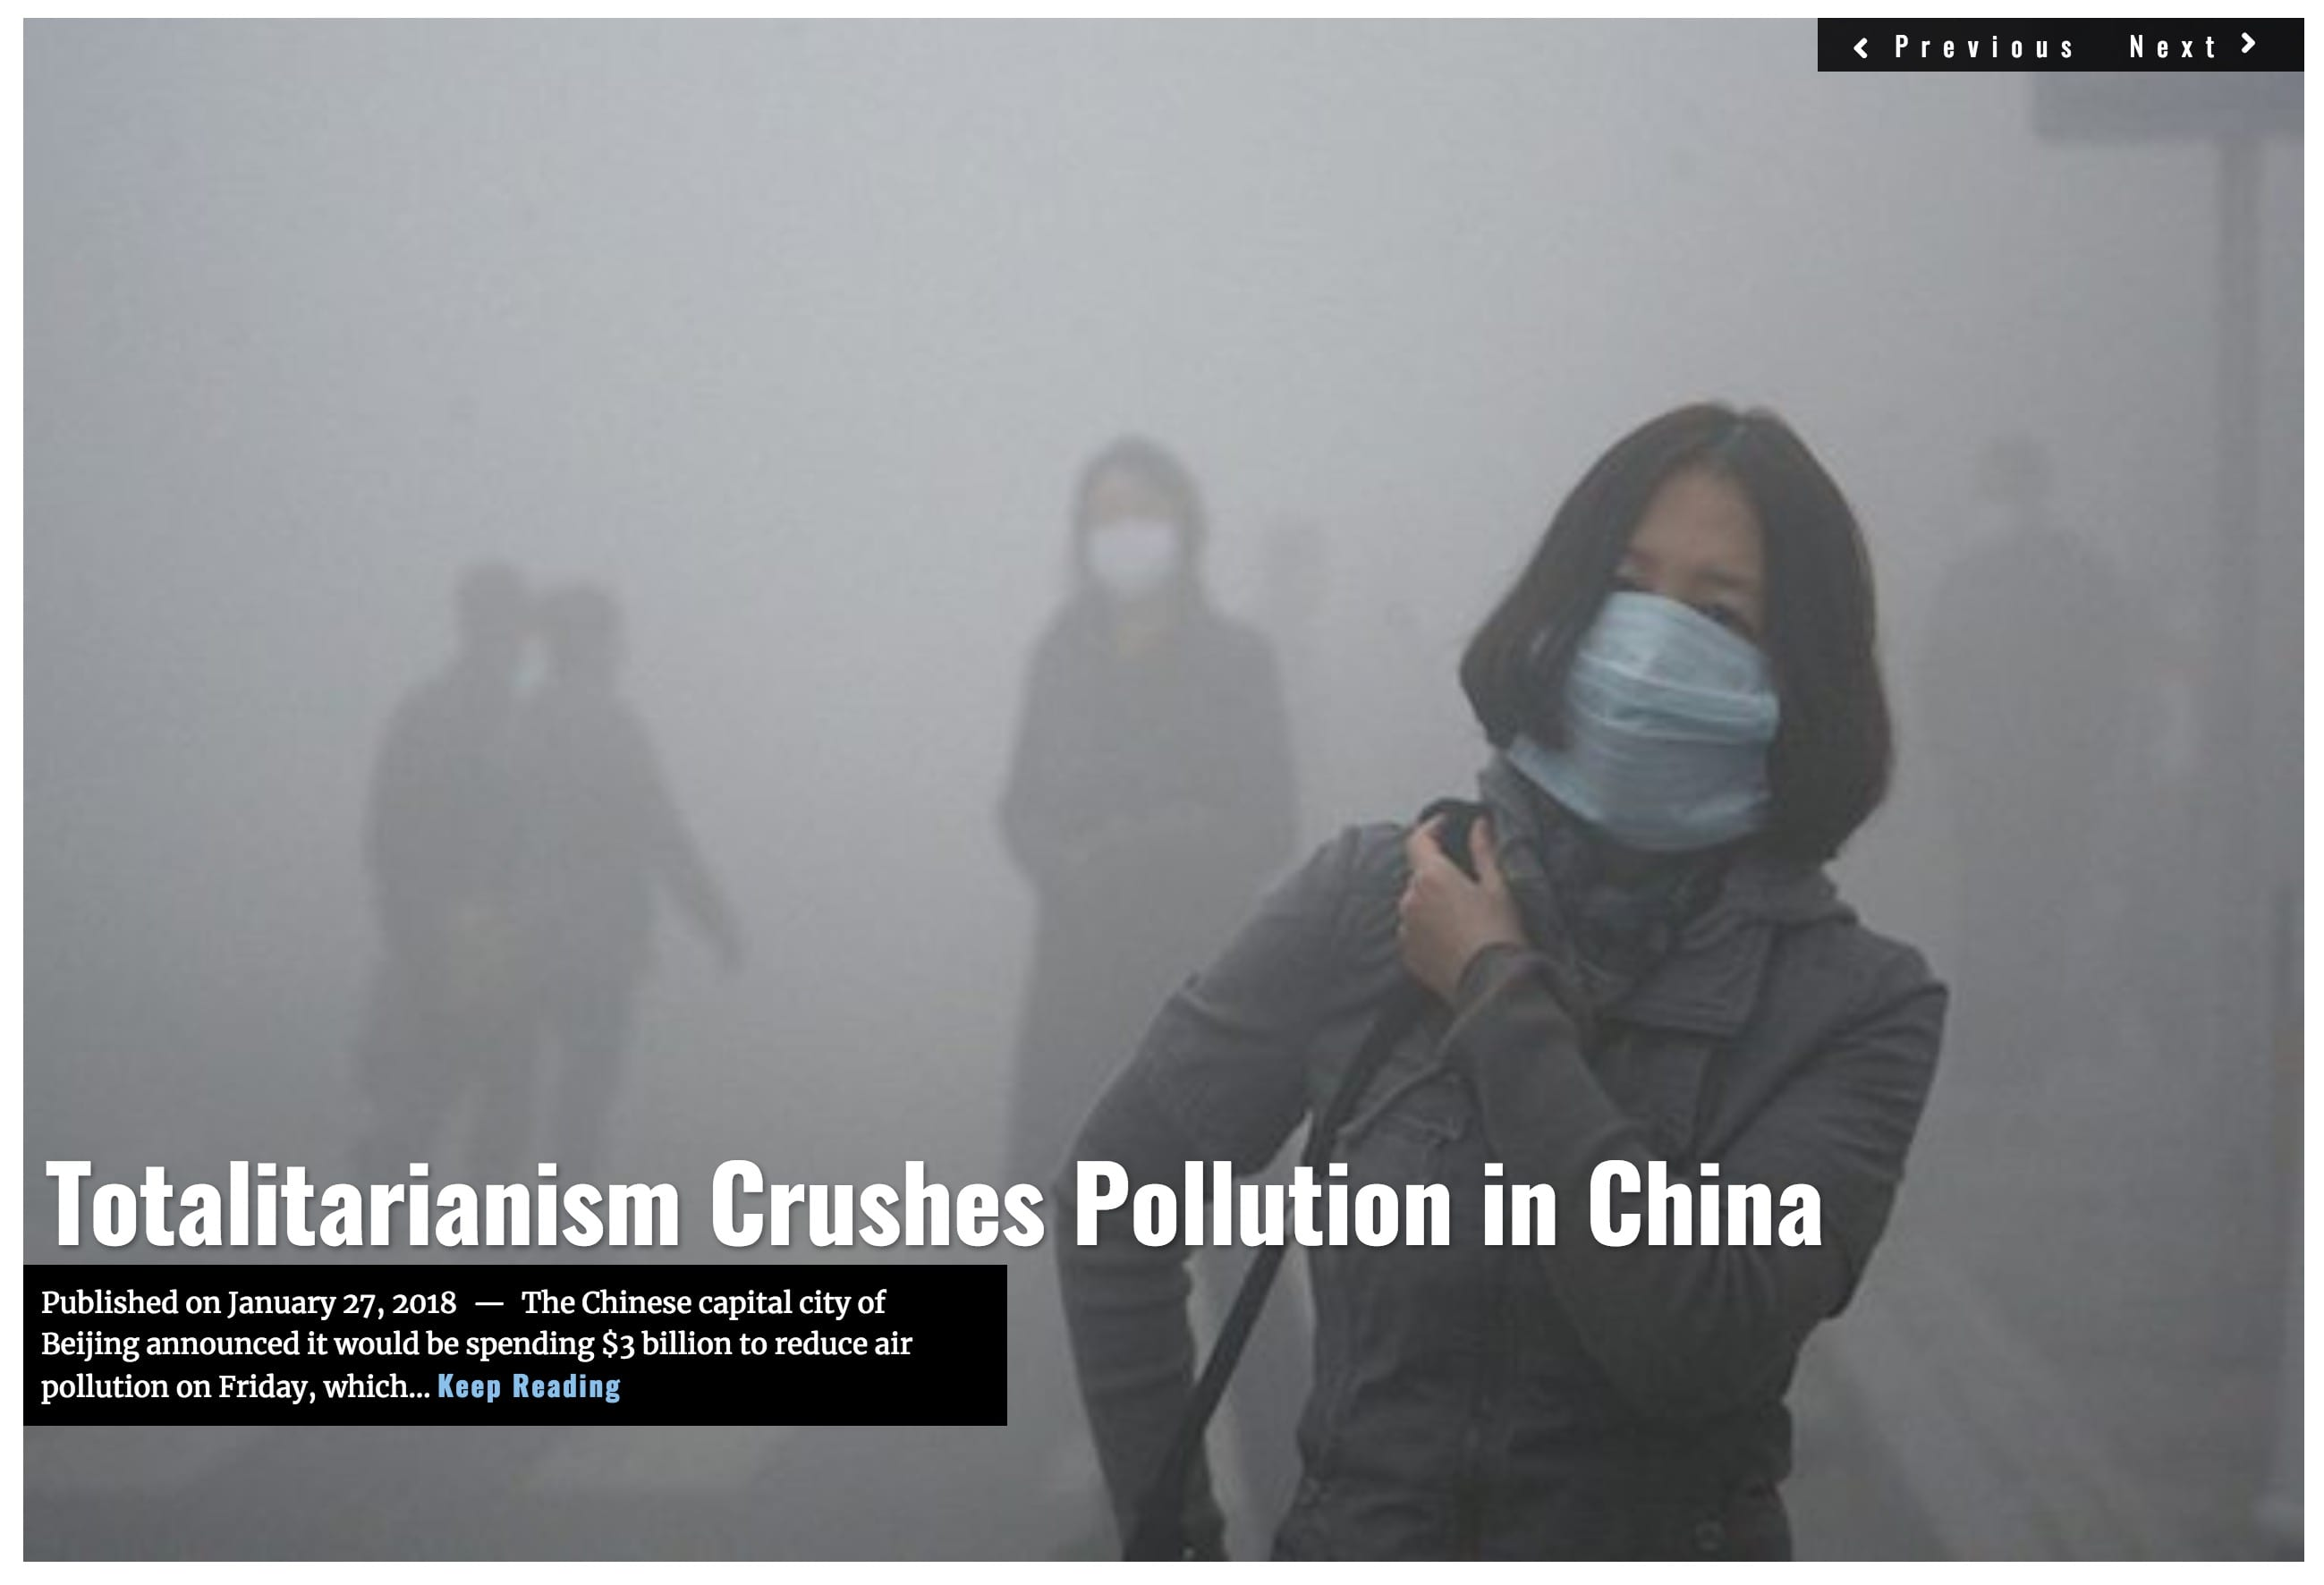 Image Lima Charlie News Headline China pollution JAN 27 2018